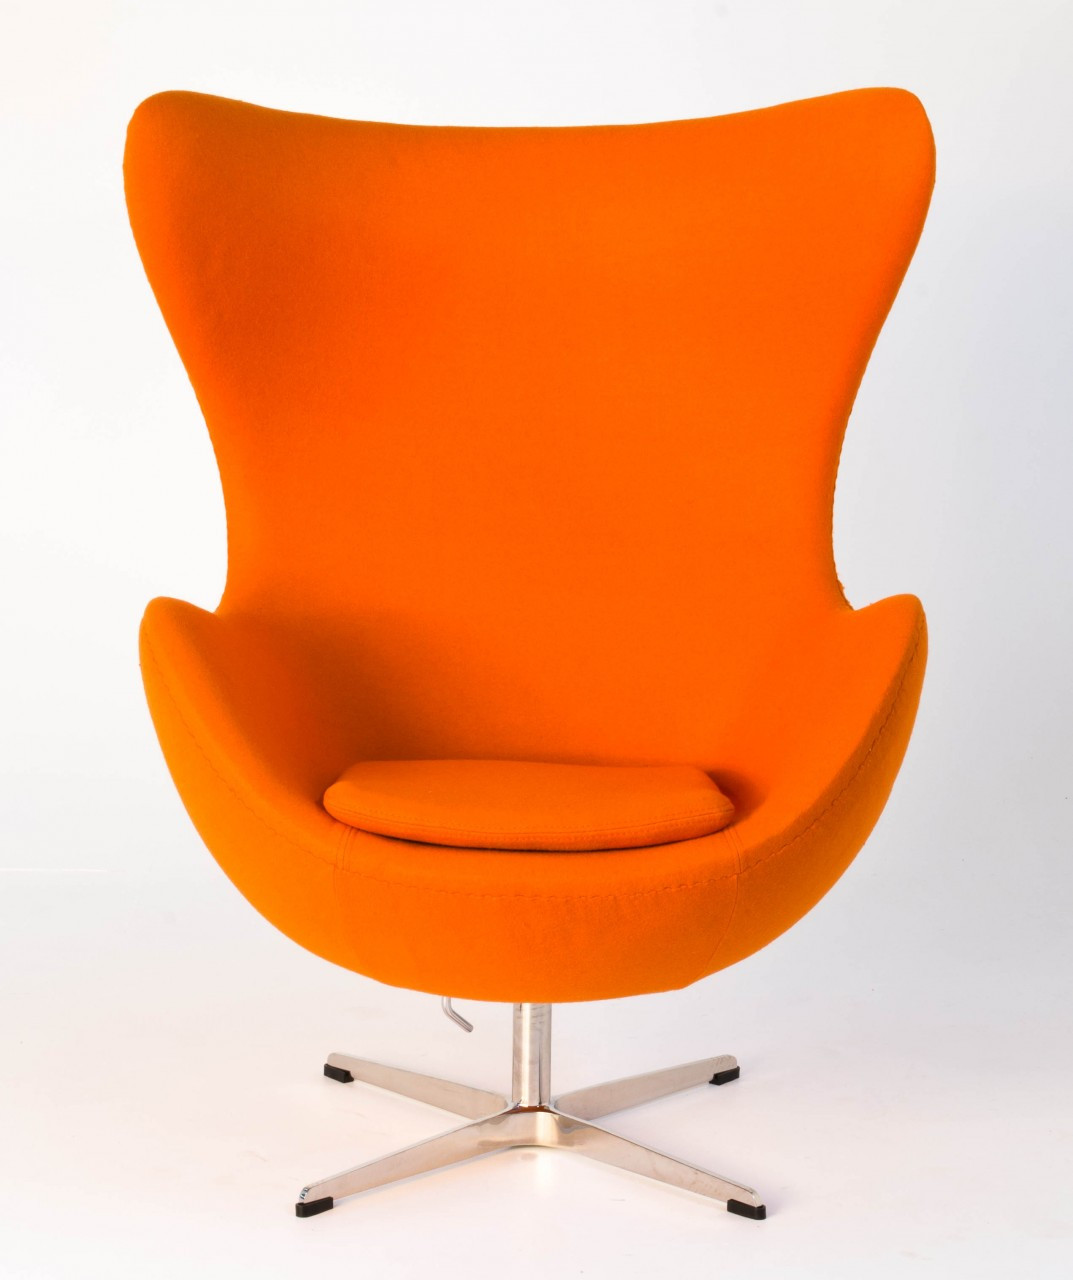 Yellow Egg Chair Replica Egg Chair Orange Replica Arne Jacobsen Egg Chair